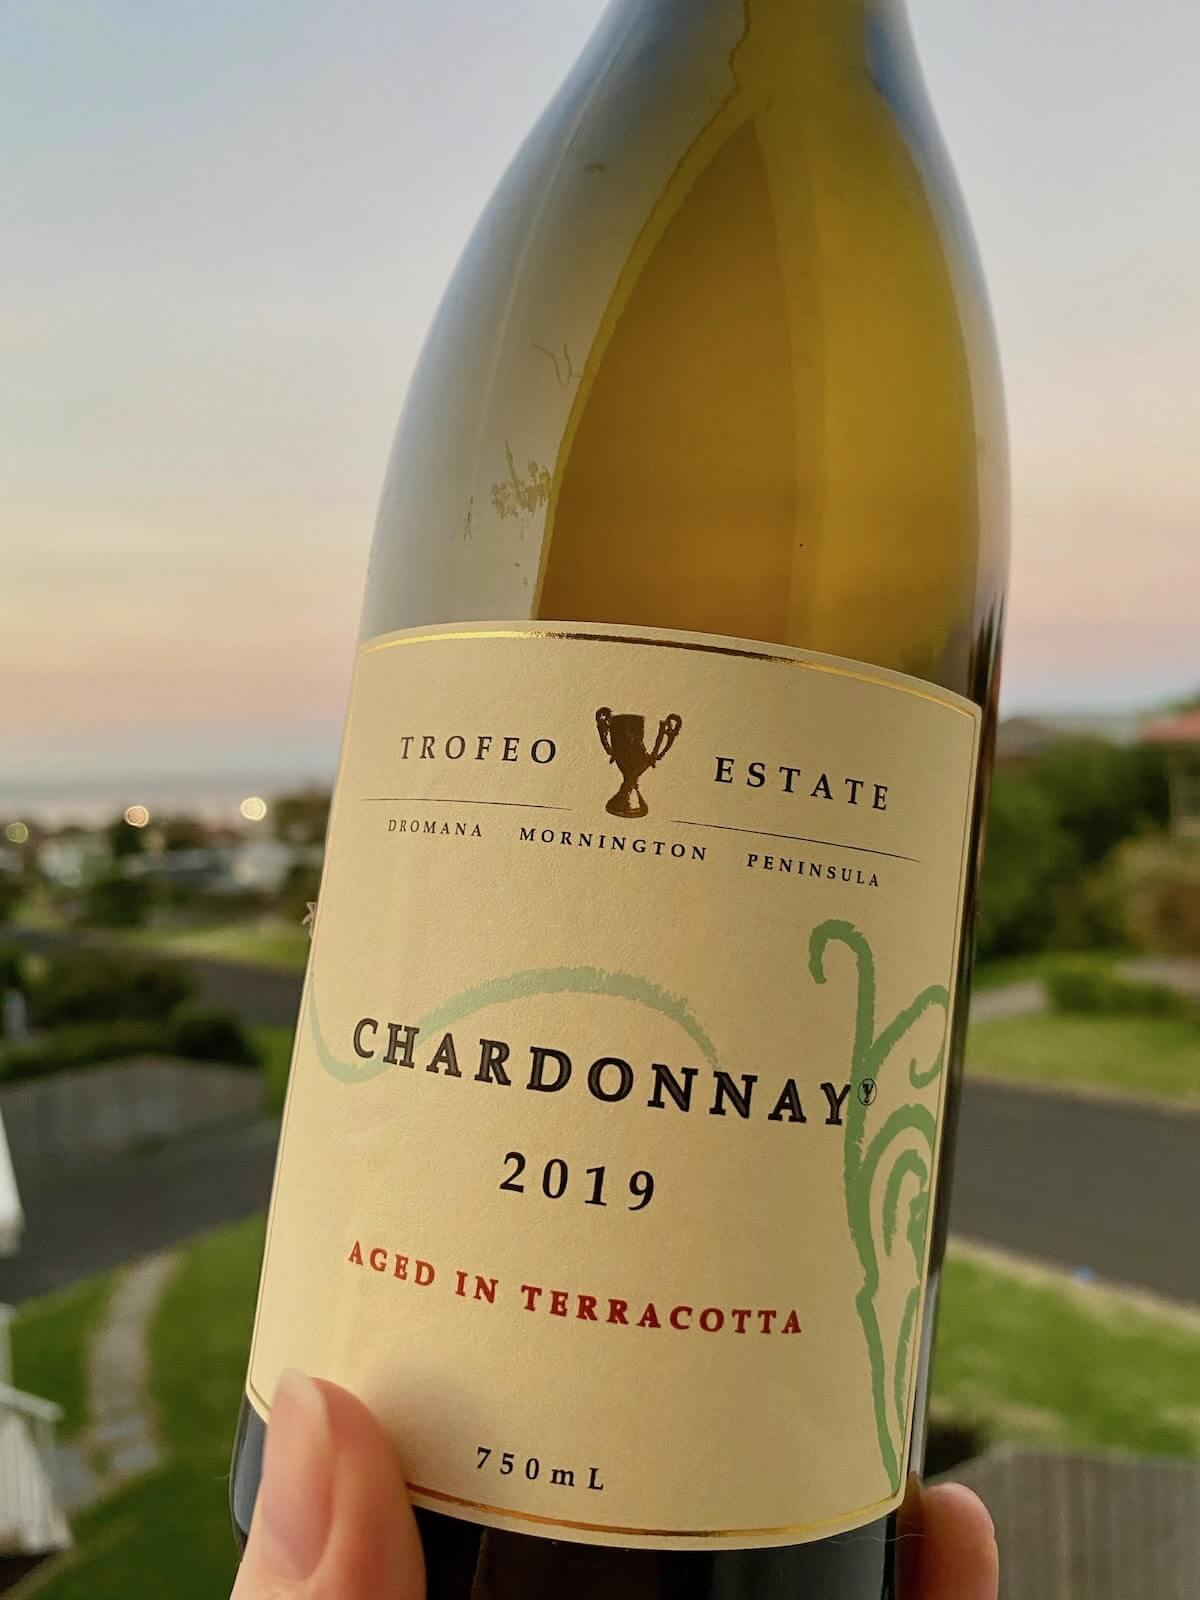 Trofeo Estate Amphora Chardonnay 2019 –  Aged in Terracotta